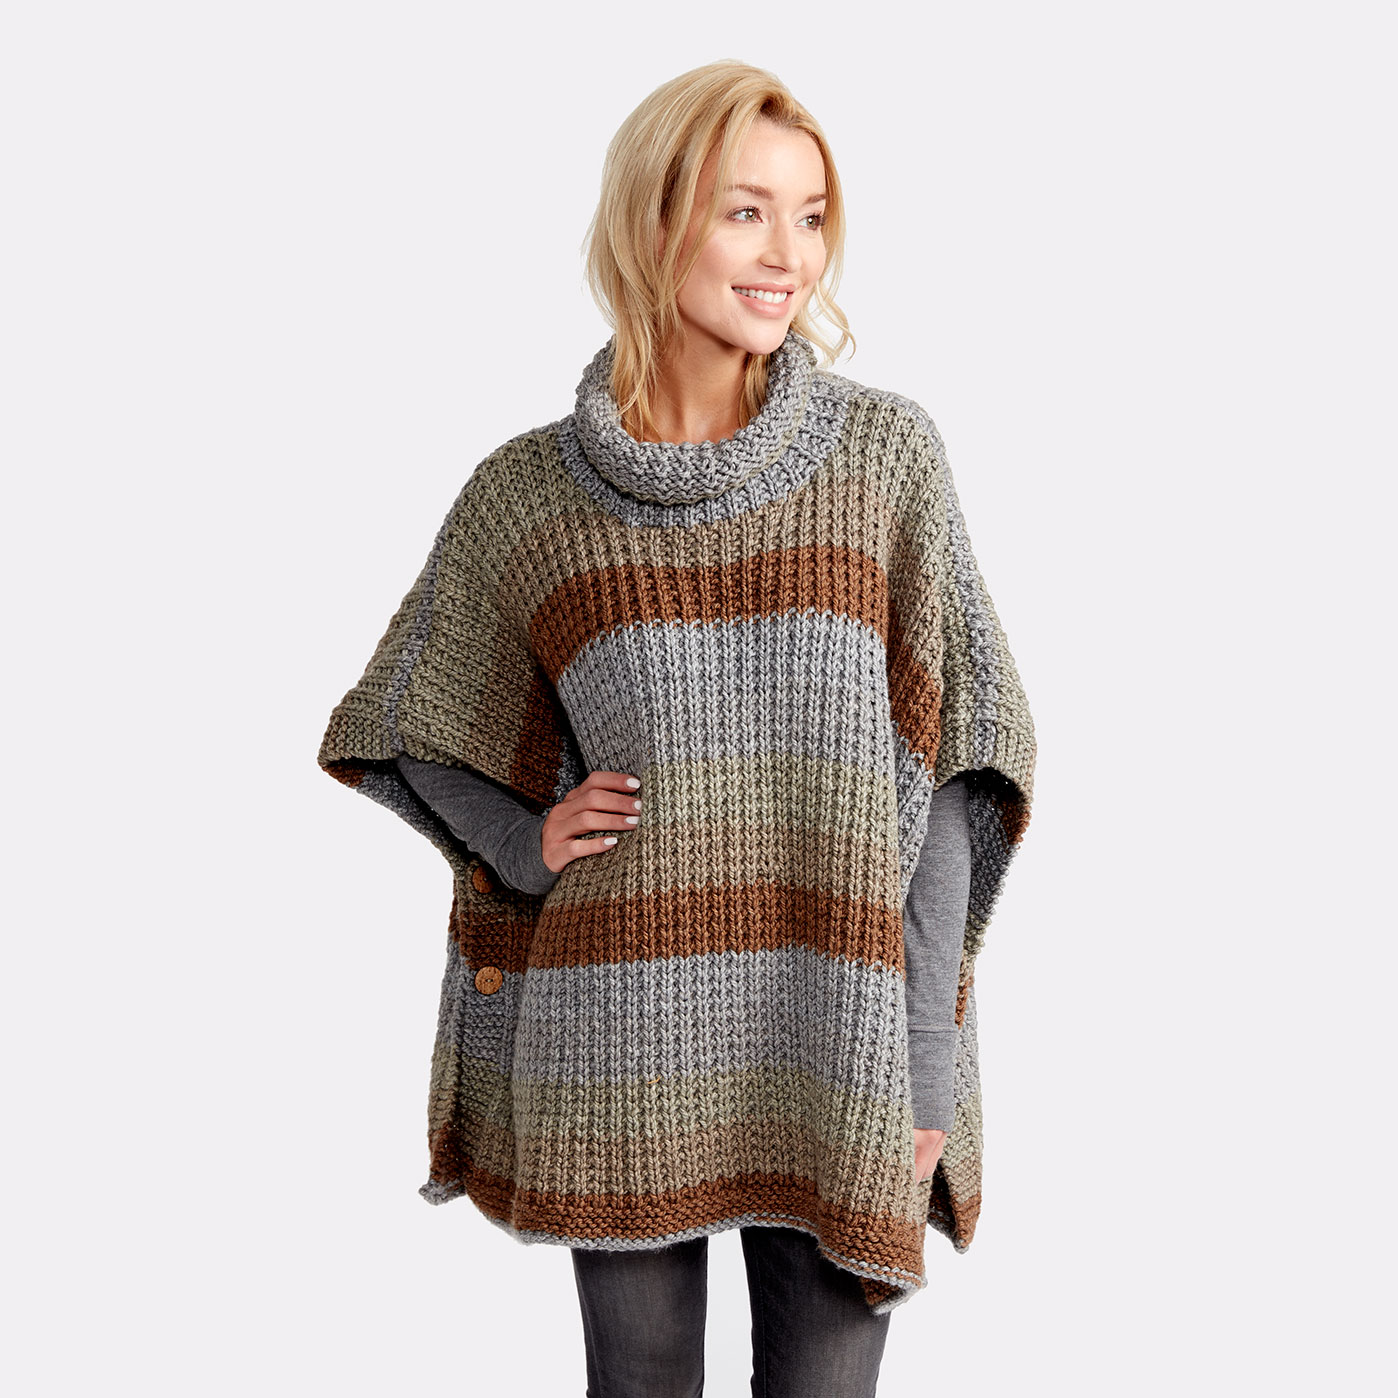 Beginner Knitting Poncho : Caron tea cakes™ cozy up knit poncho